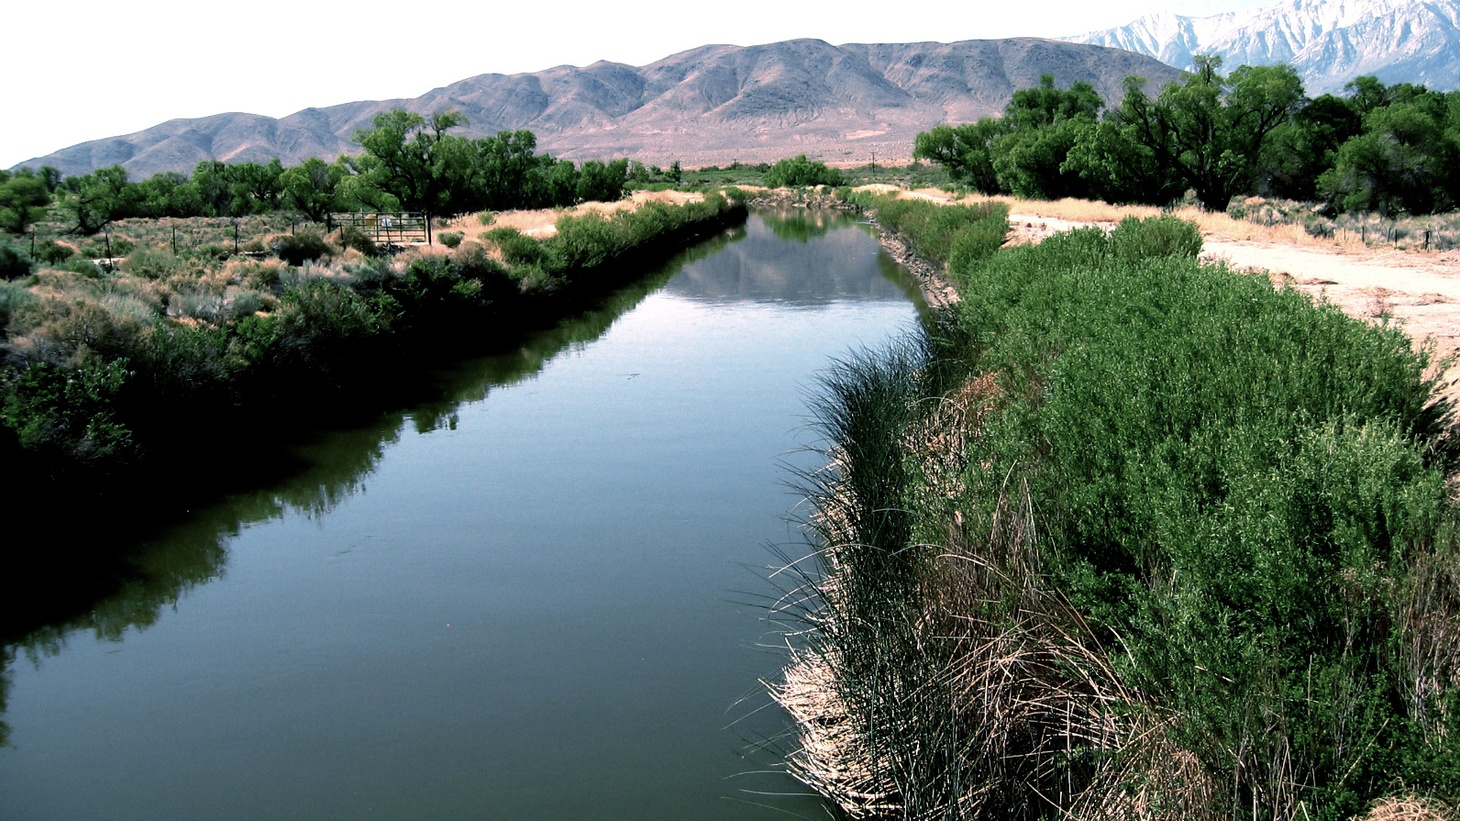 Water officials in Los Angeles and the Owens Valley announced an historic agreement today that could save L.A. 3 billion gallons of water a year.